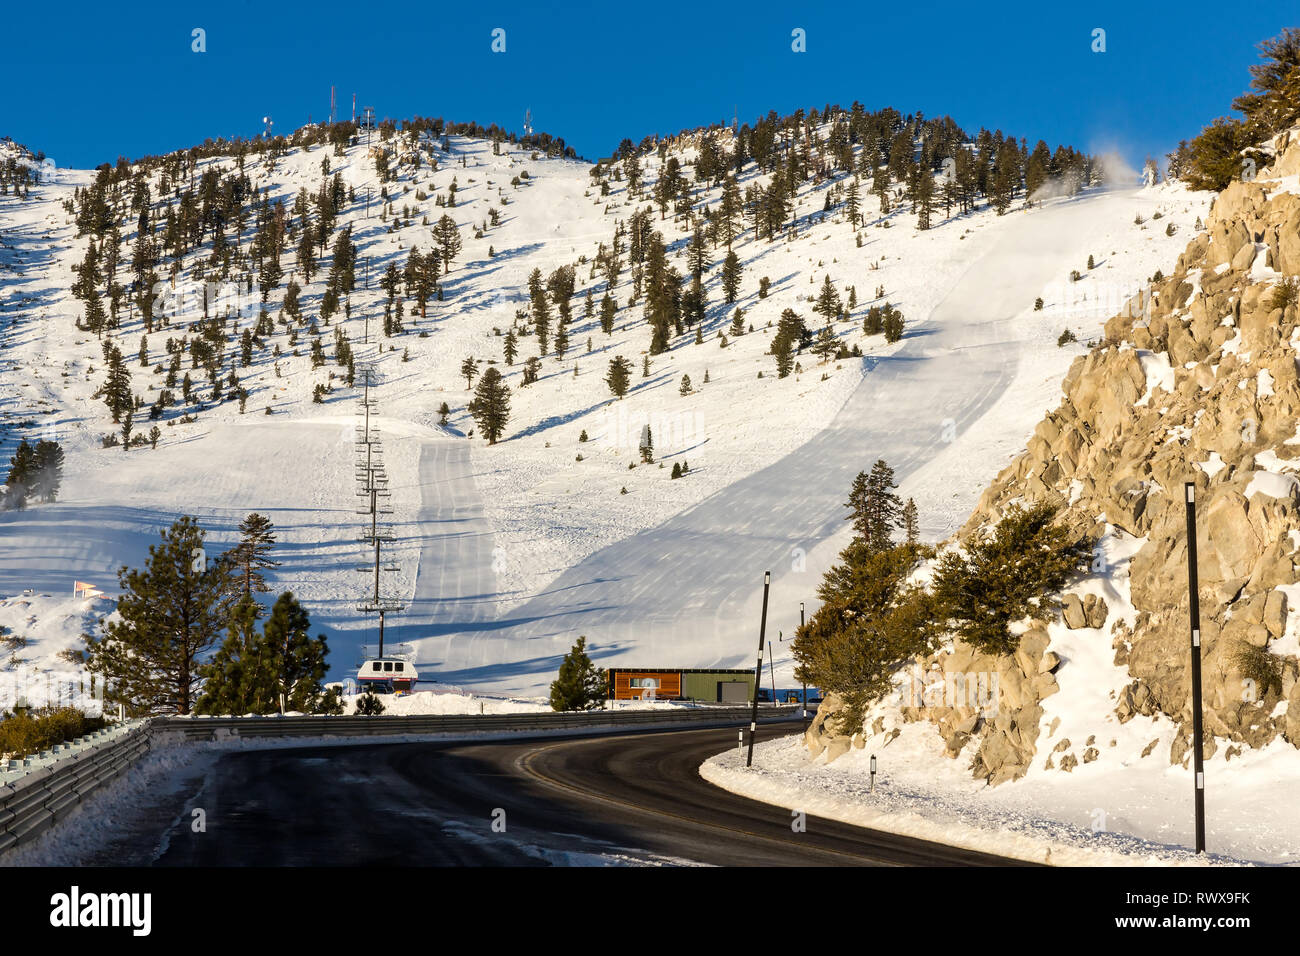 Ski resort in the winter with groomed runs going up the hill Stock Photo